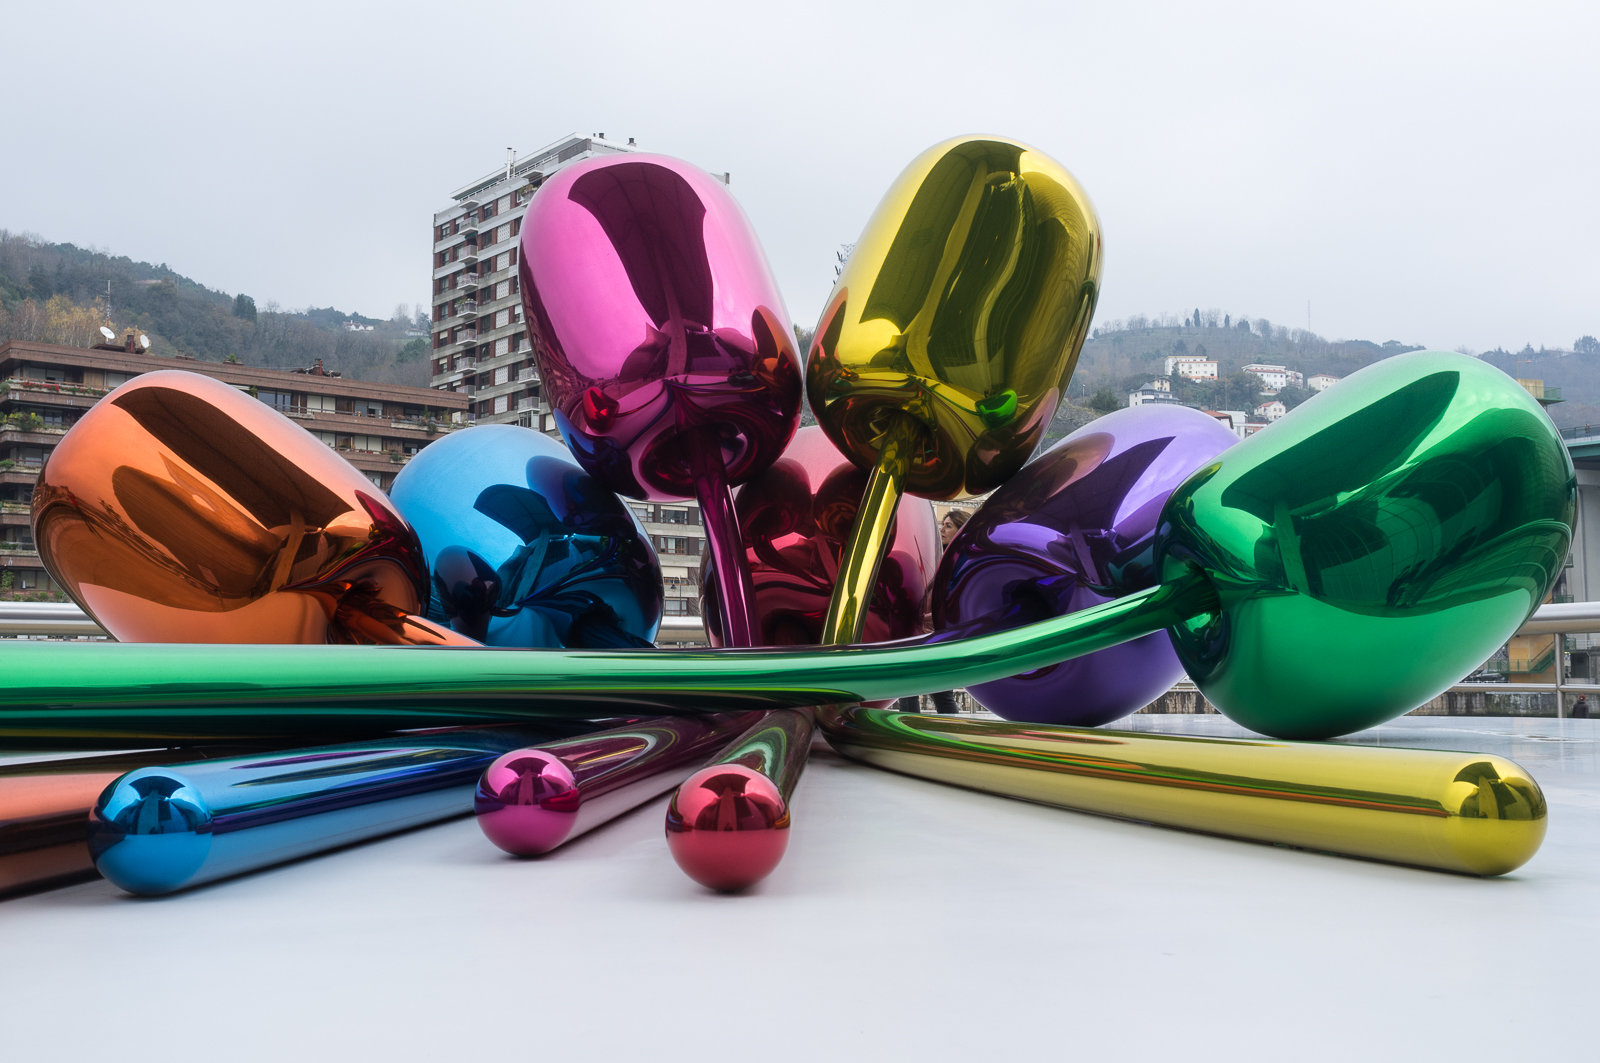 Jeff Koons' metallic tulips